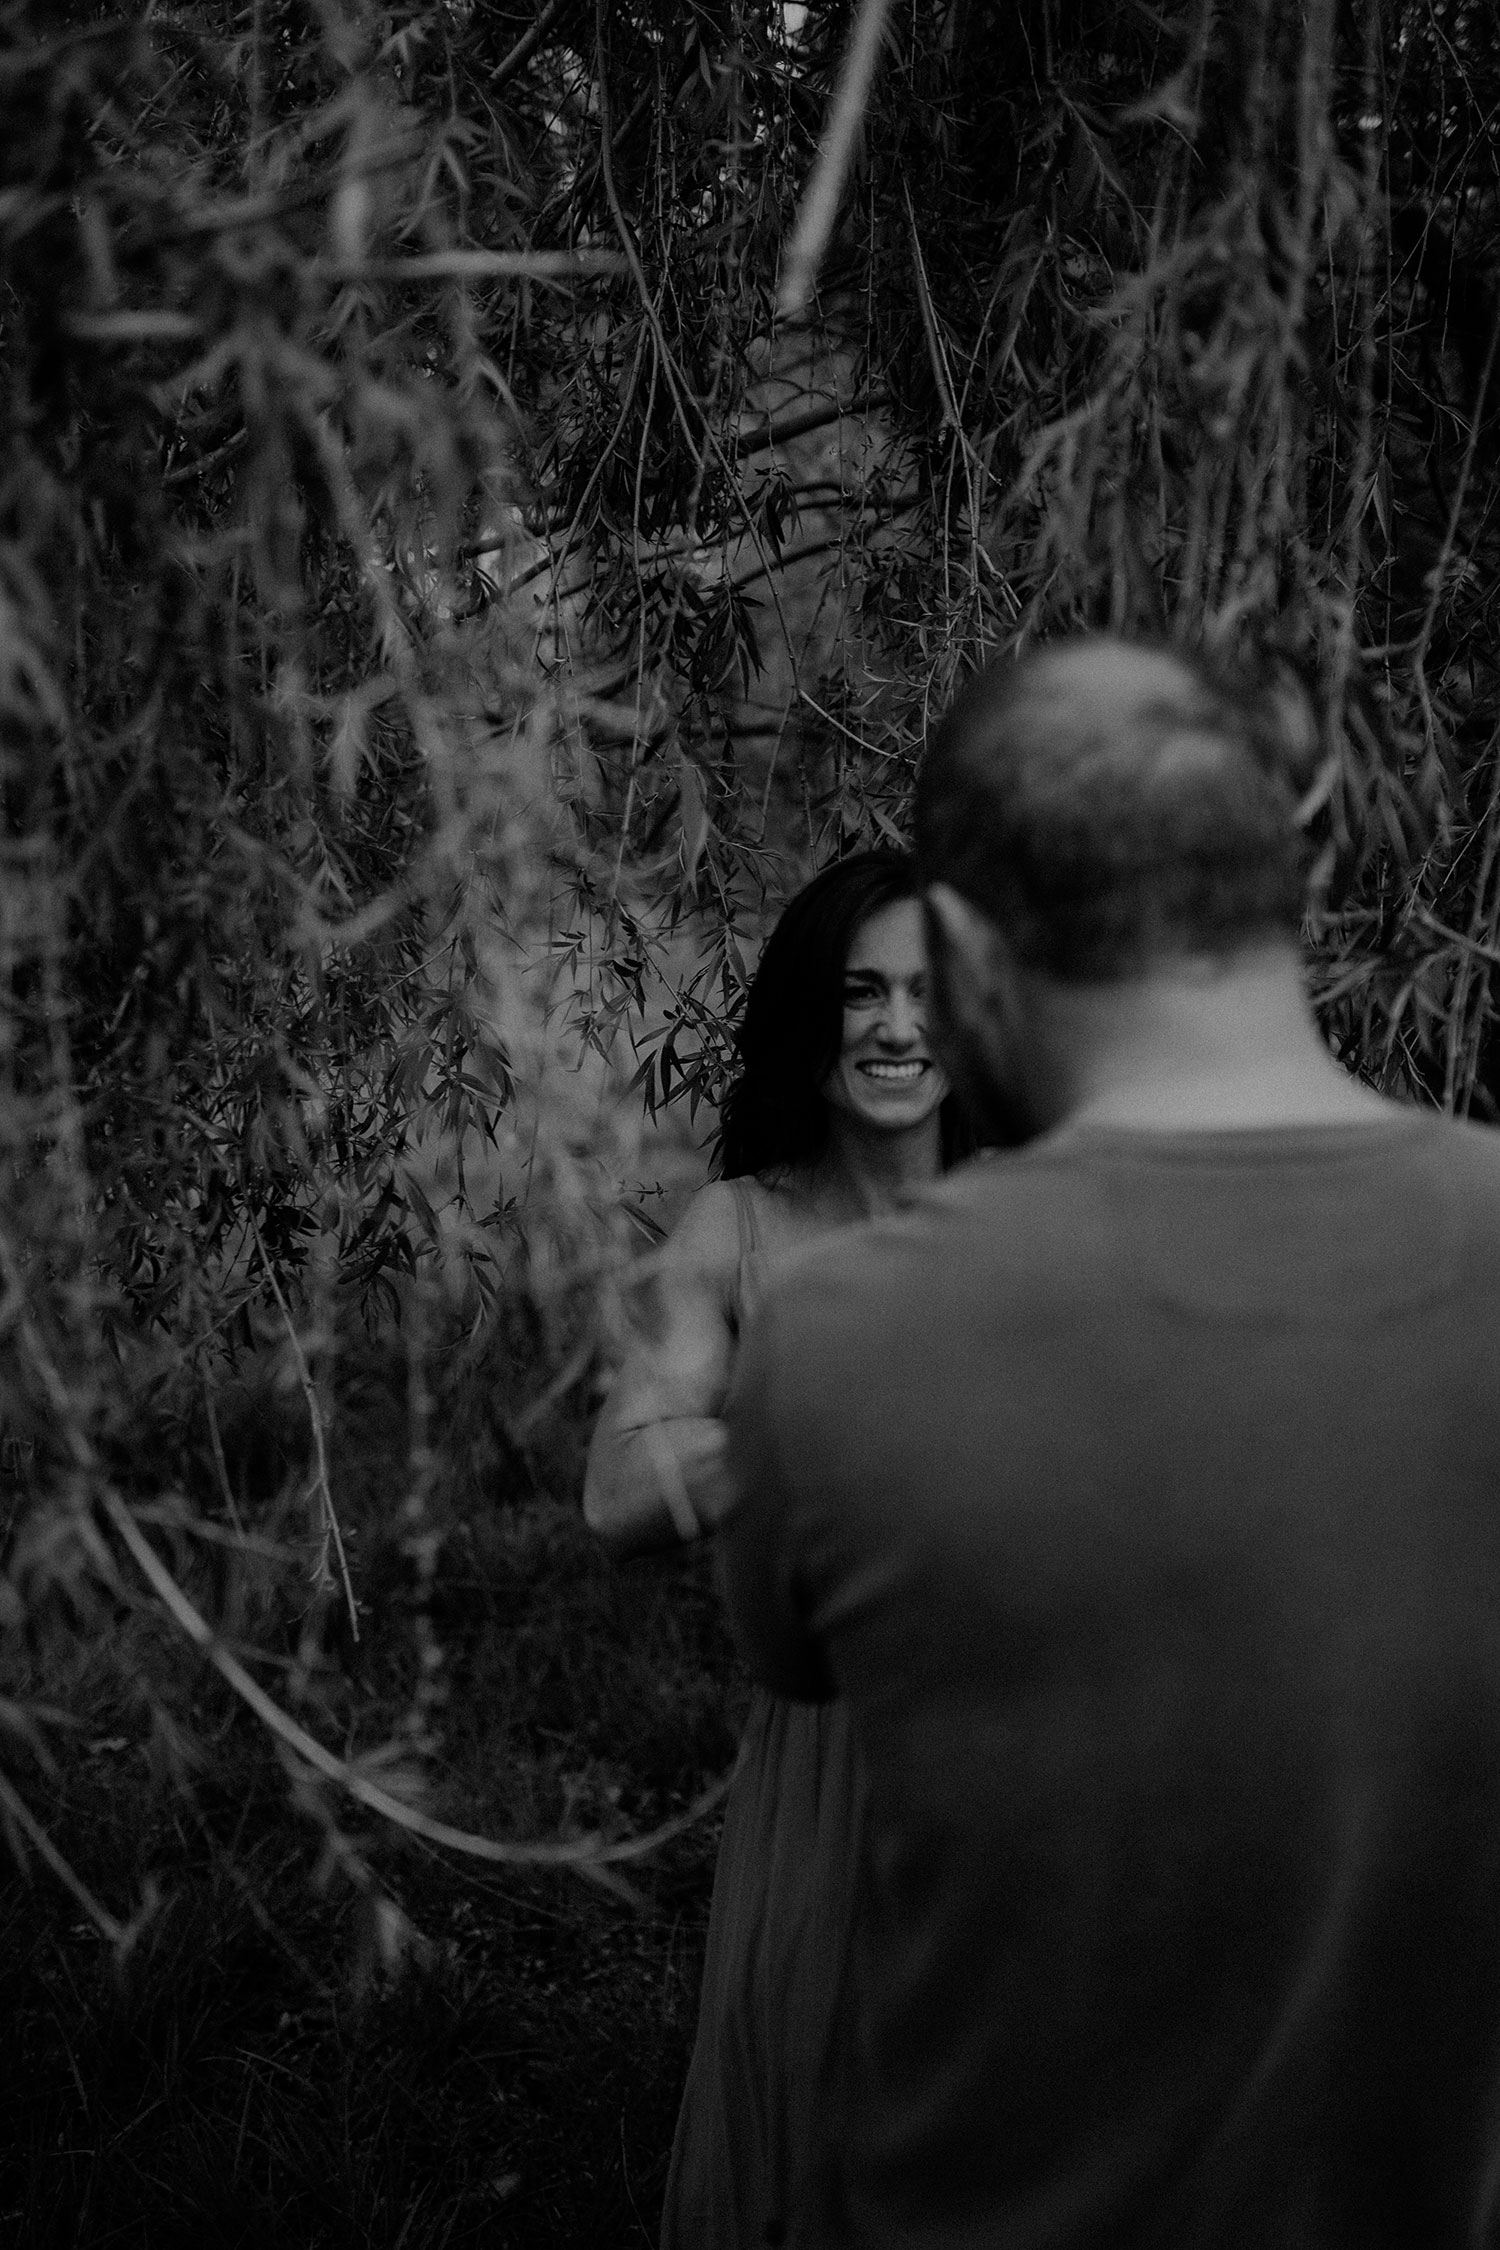 woman-leading-man-under-willow-tree-engagement-desmoines-iowa-raelyn-ramey-photography.jpg